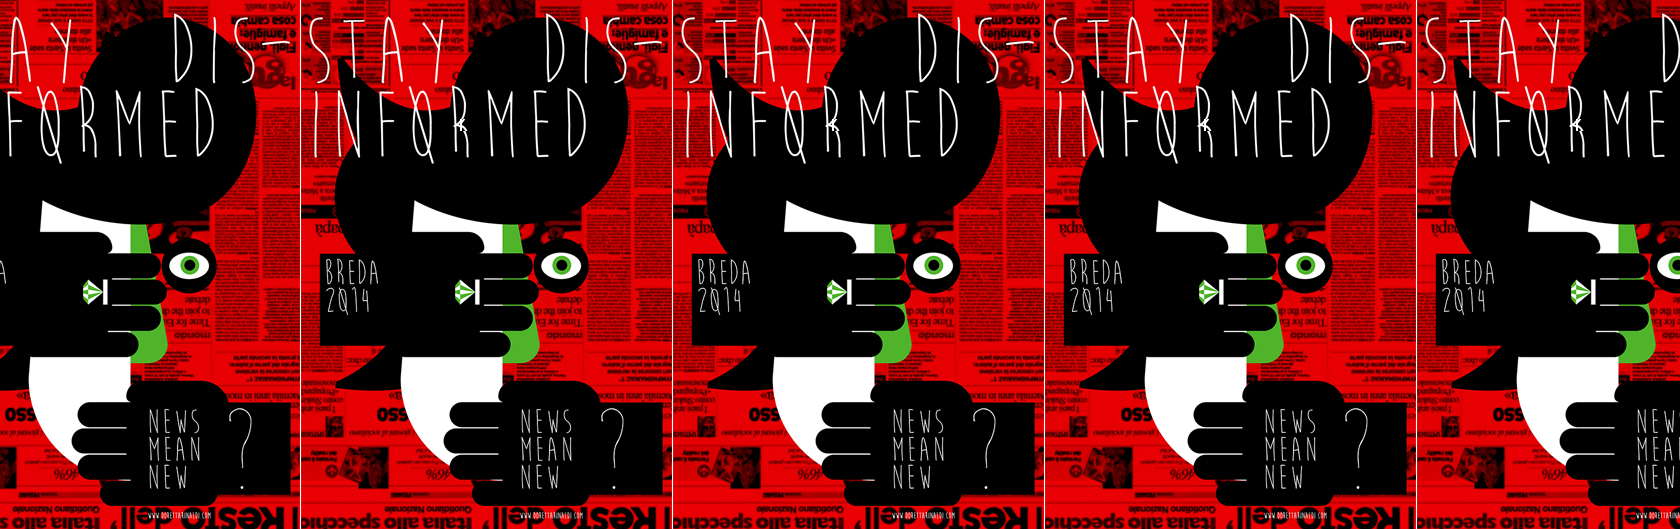 Stay disinformed - Graphic Design Festival Breda 2014